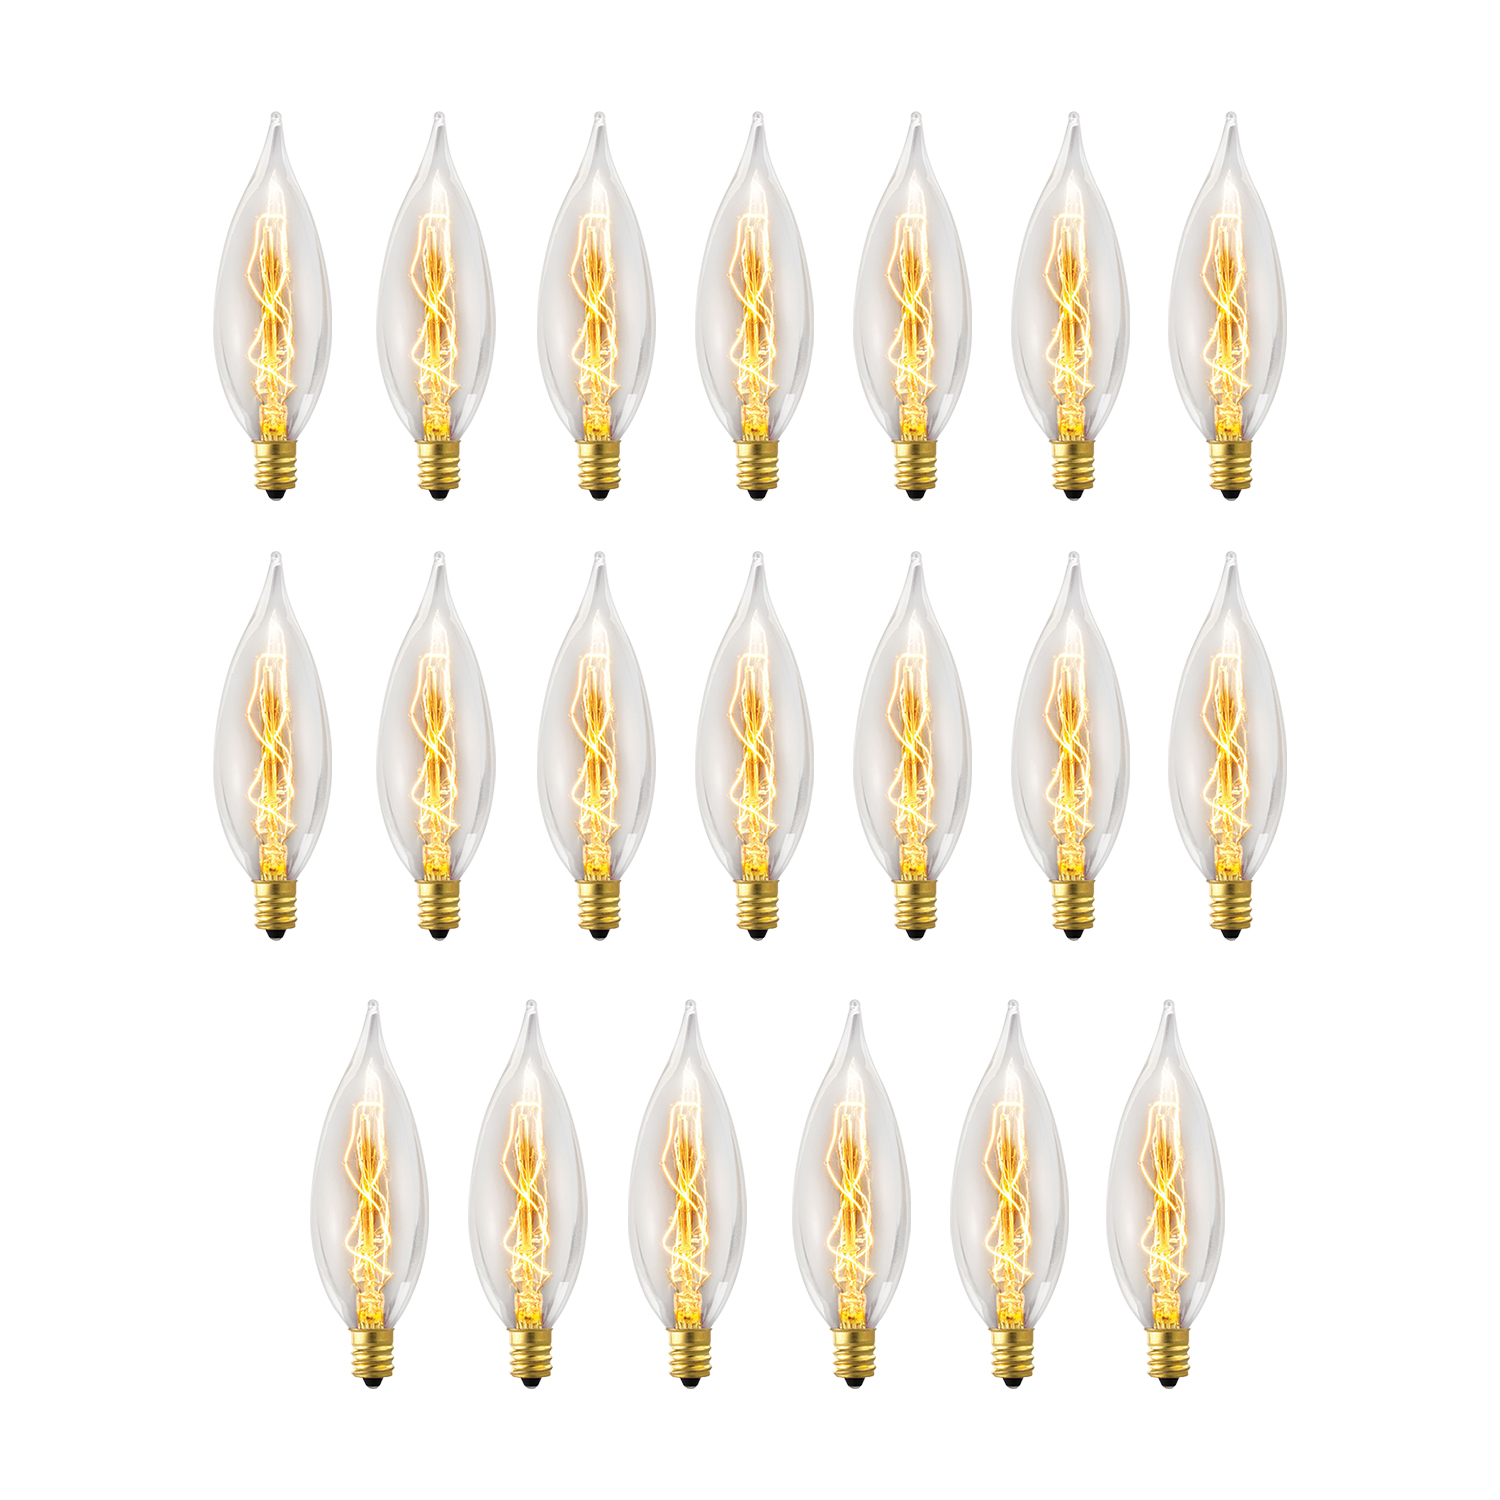 Globe Electric 25W Vintage Edison CA10 Flame Tip Incandescent Light Bulb (20-Pack), 84308